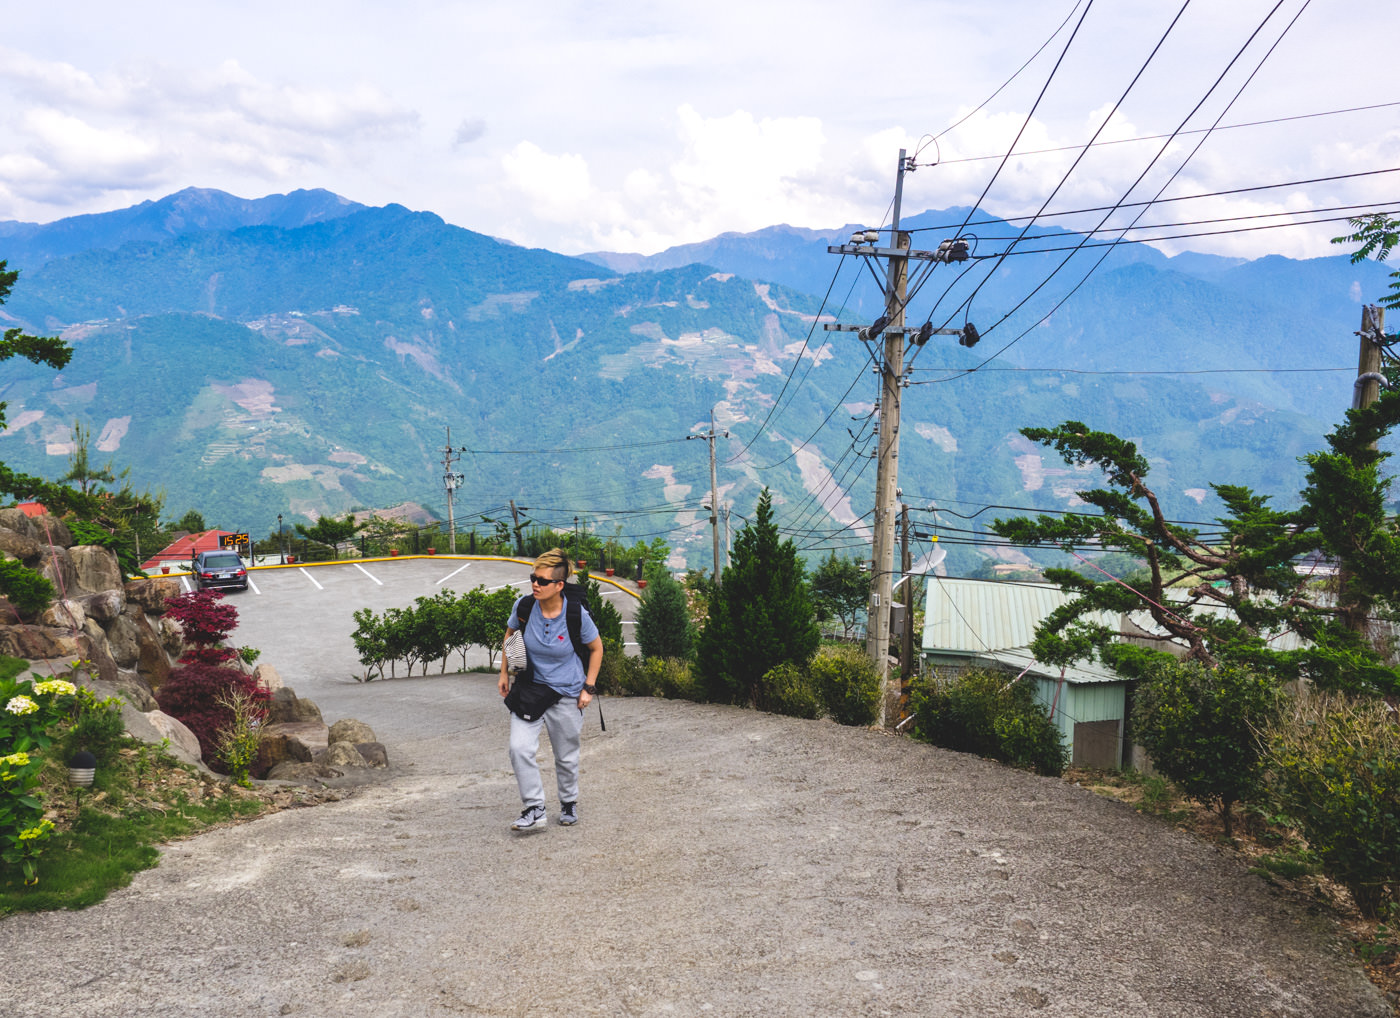 Taiwan - Qingjing - Walking up a steep slope to our accommodation